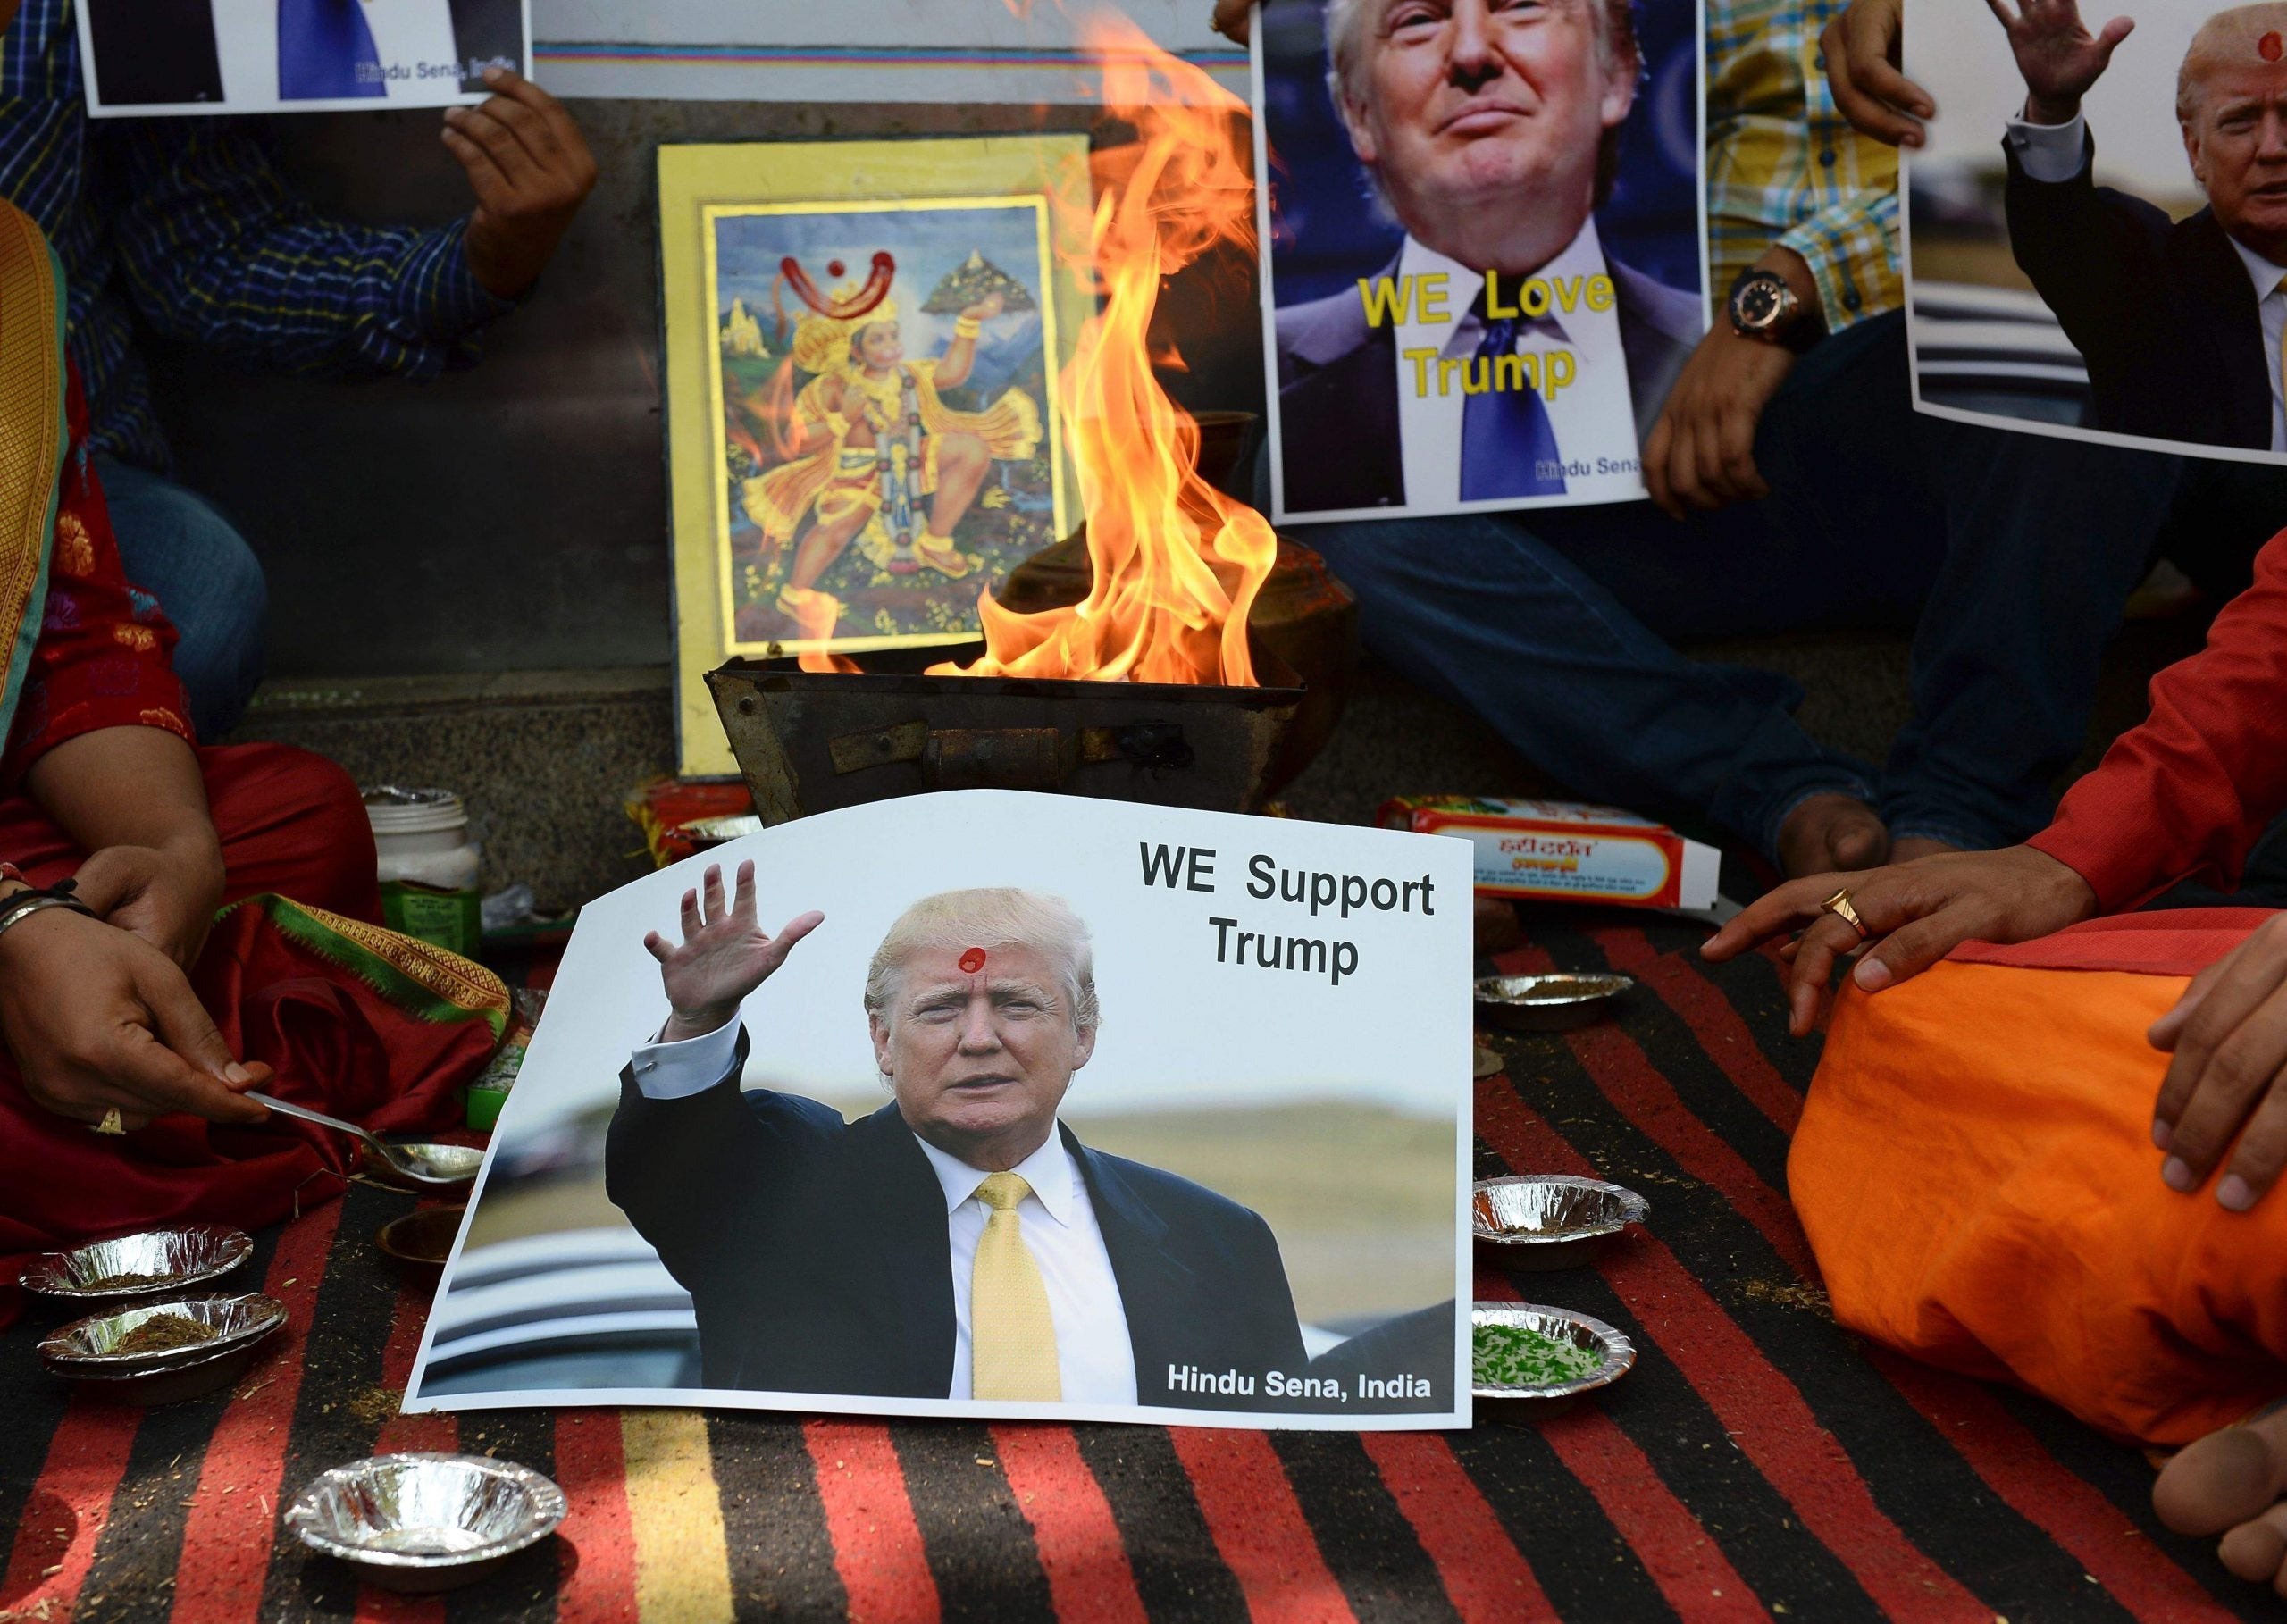 Take it from India - this is what to expect when a far-right leader seizes power